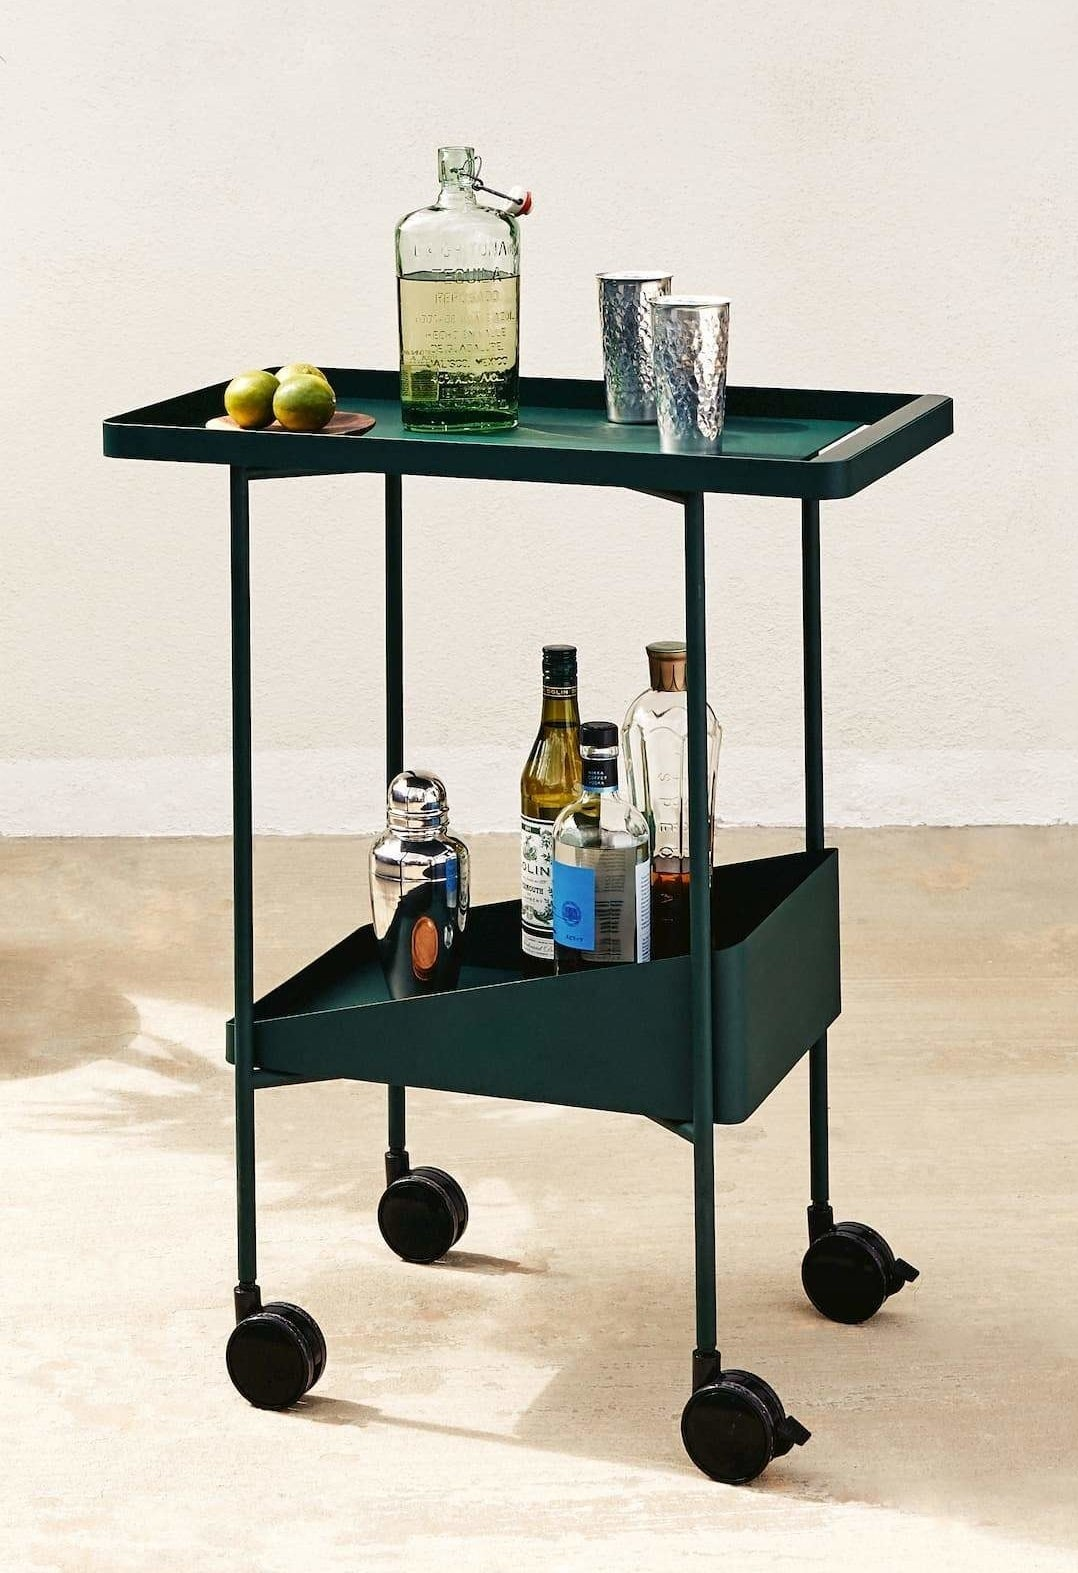 A dark green rolling trolley cart with a serving top and bottom shelf filled with bottles and cocktail supplies